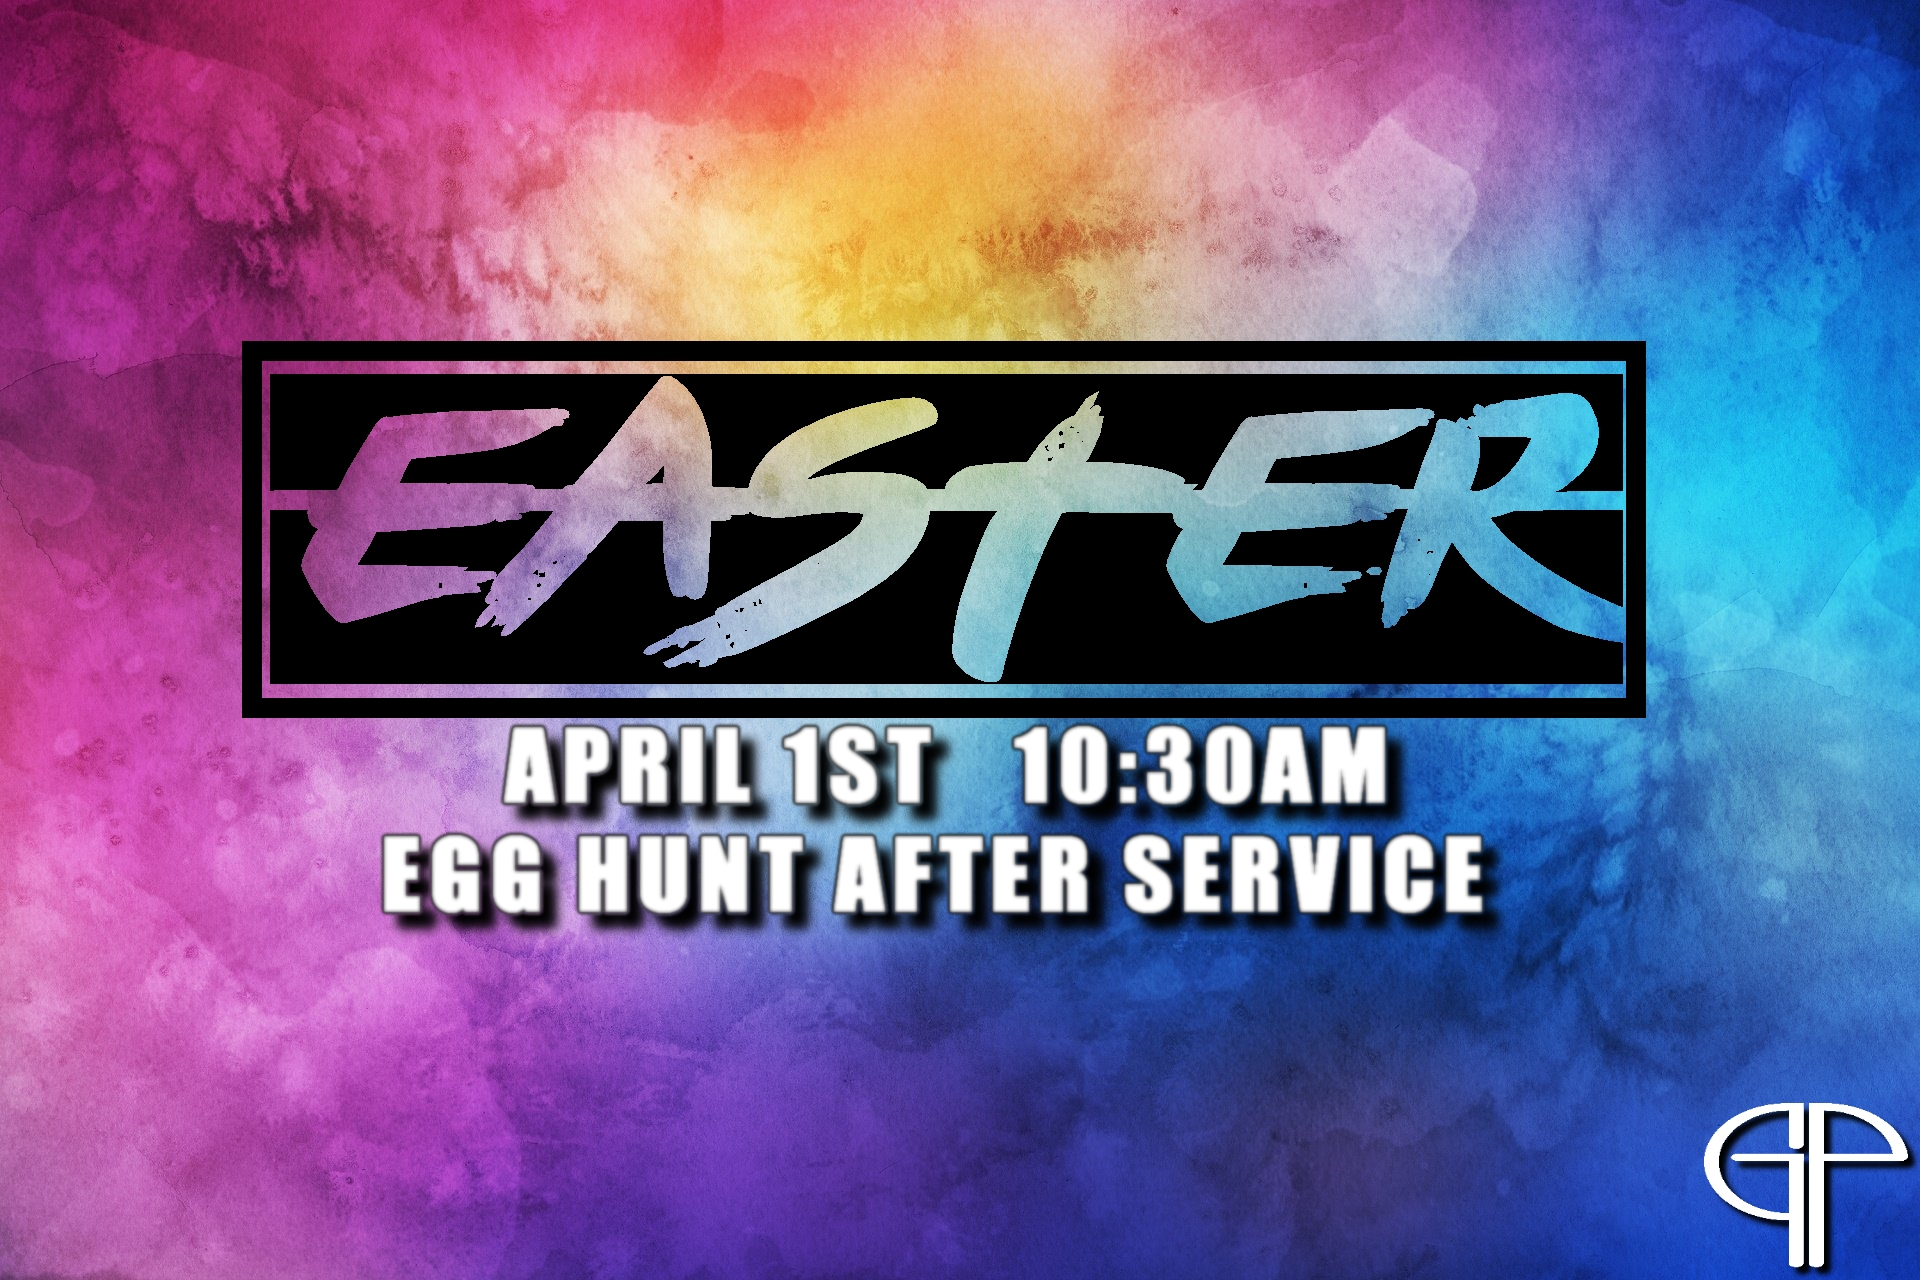 Grace Pointe Easter - Please be sure to make plans to attend our Easter service starting at 10:30am. This service will be one you do not want to miss. We will also have a HUGE Easter Egg hunt for the kids immediately after the service. If you will be planning on attending please allow us to save a seat for you all you have to do is fill out the form below and we will be sure to save you a seat. We look forward to seeing you there!